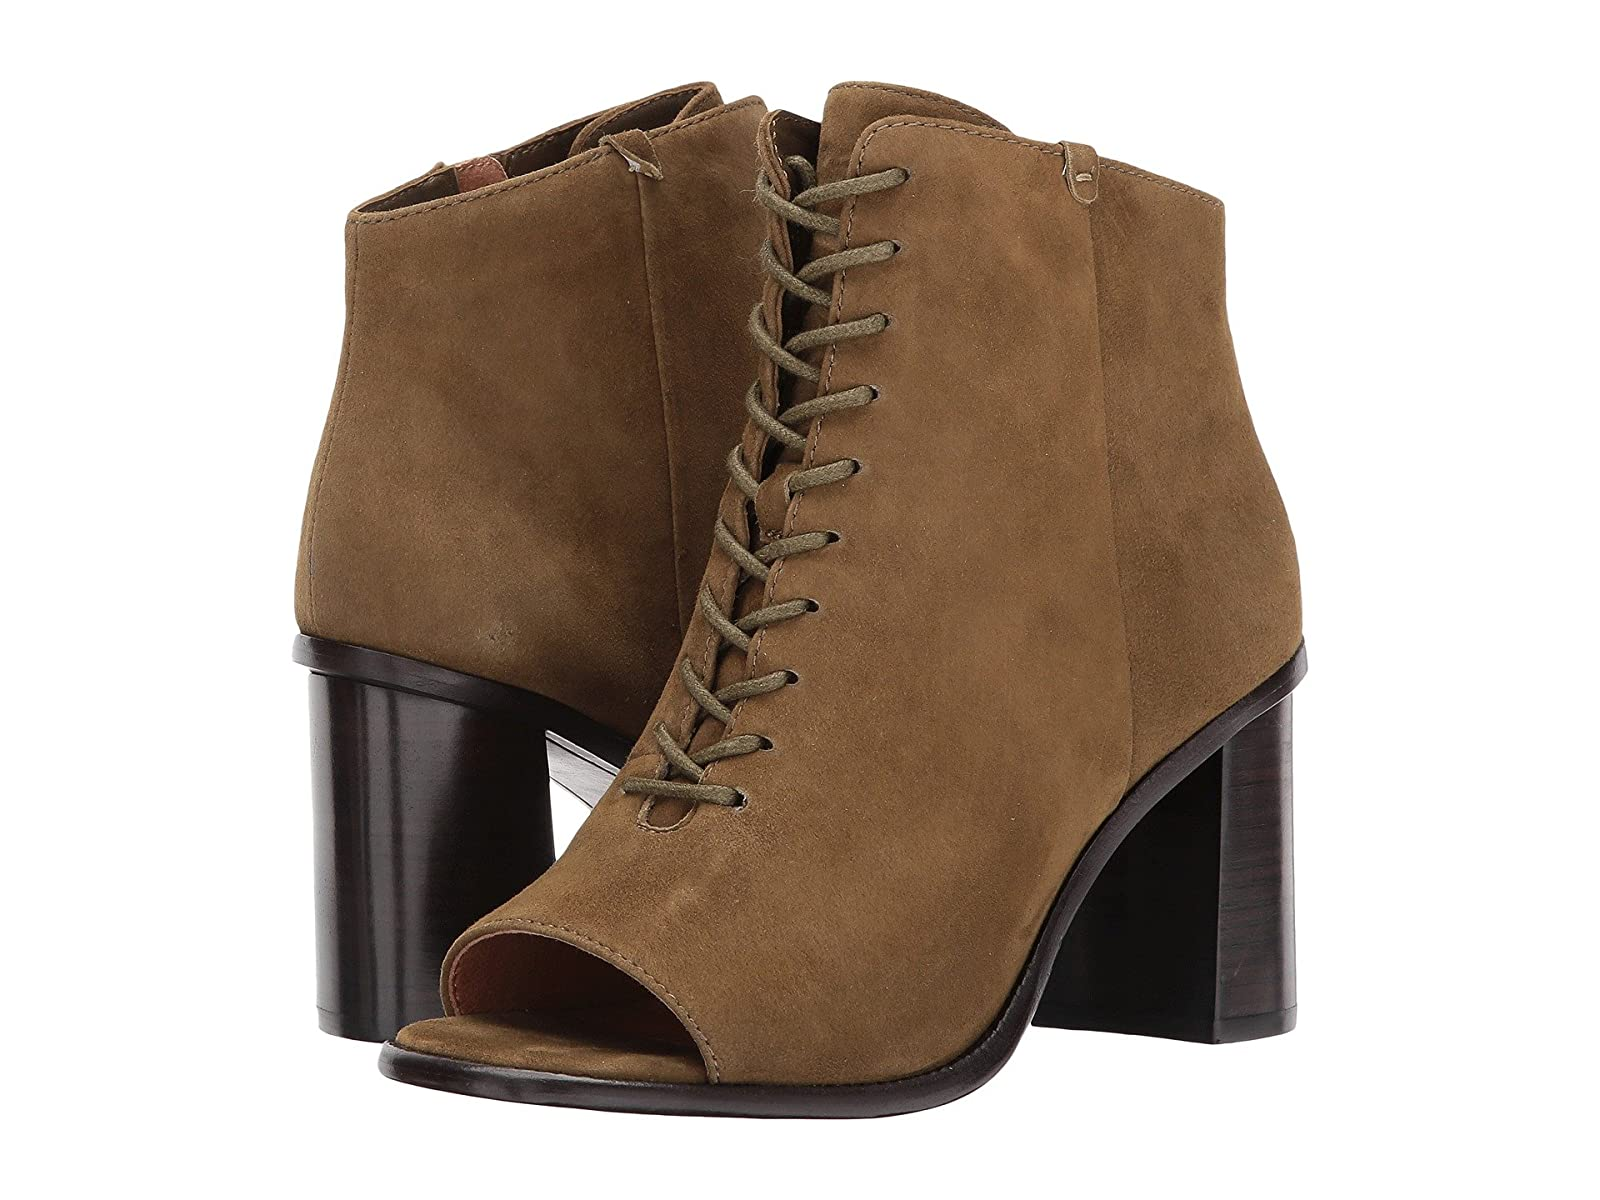 Frye Amy Peep LaceCheap and distinctive eye-catching shoes